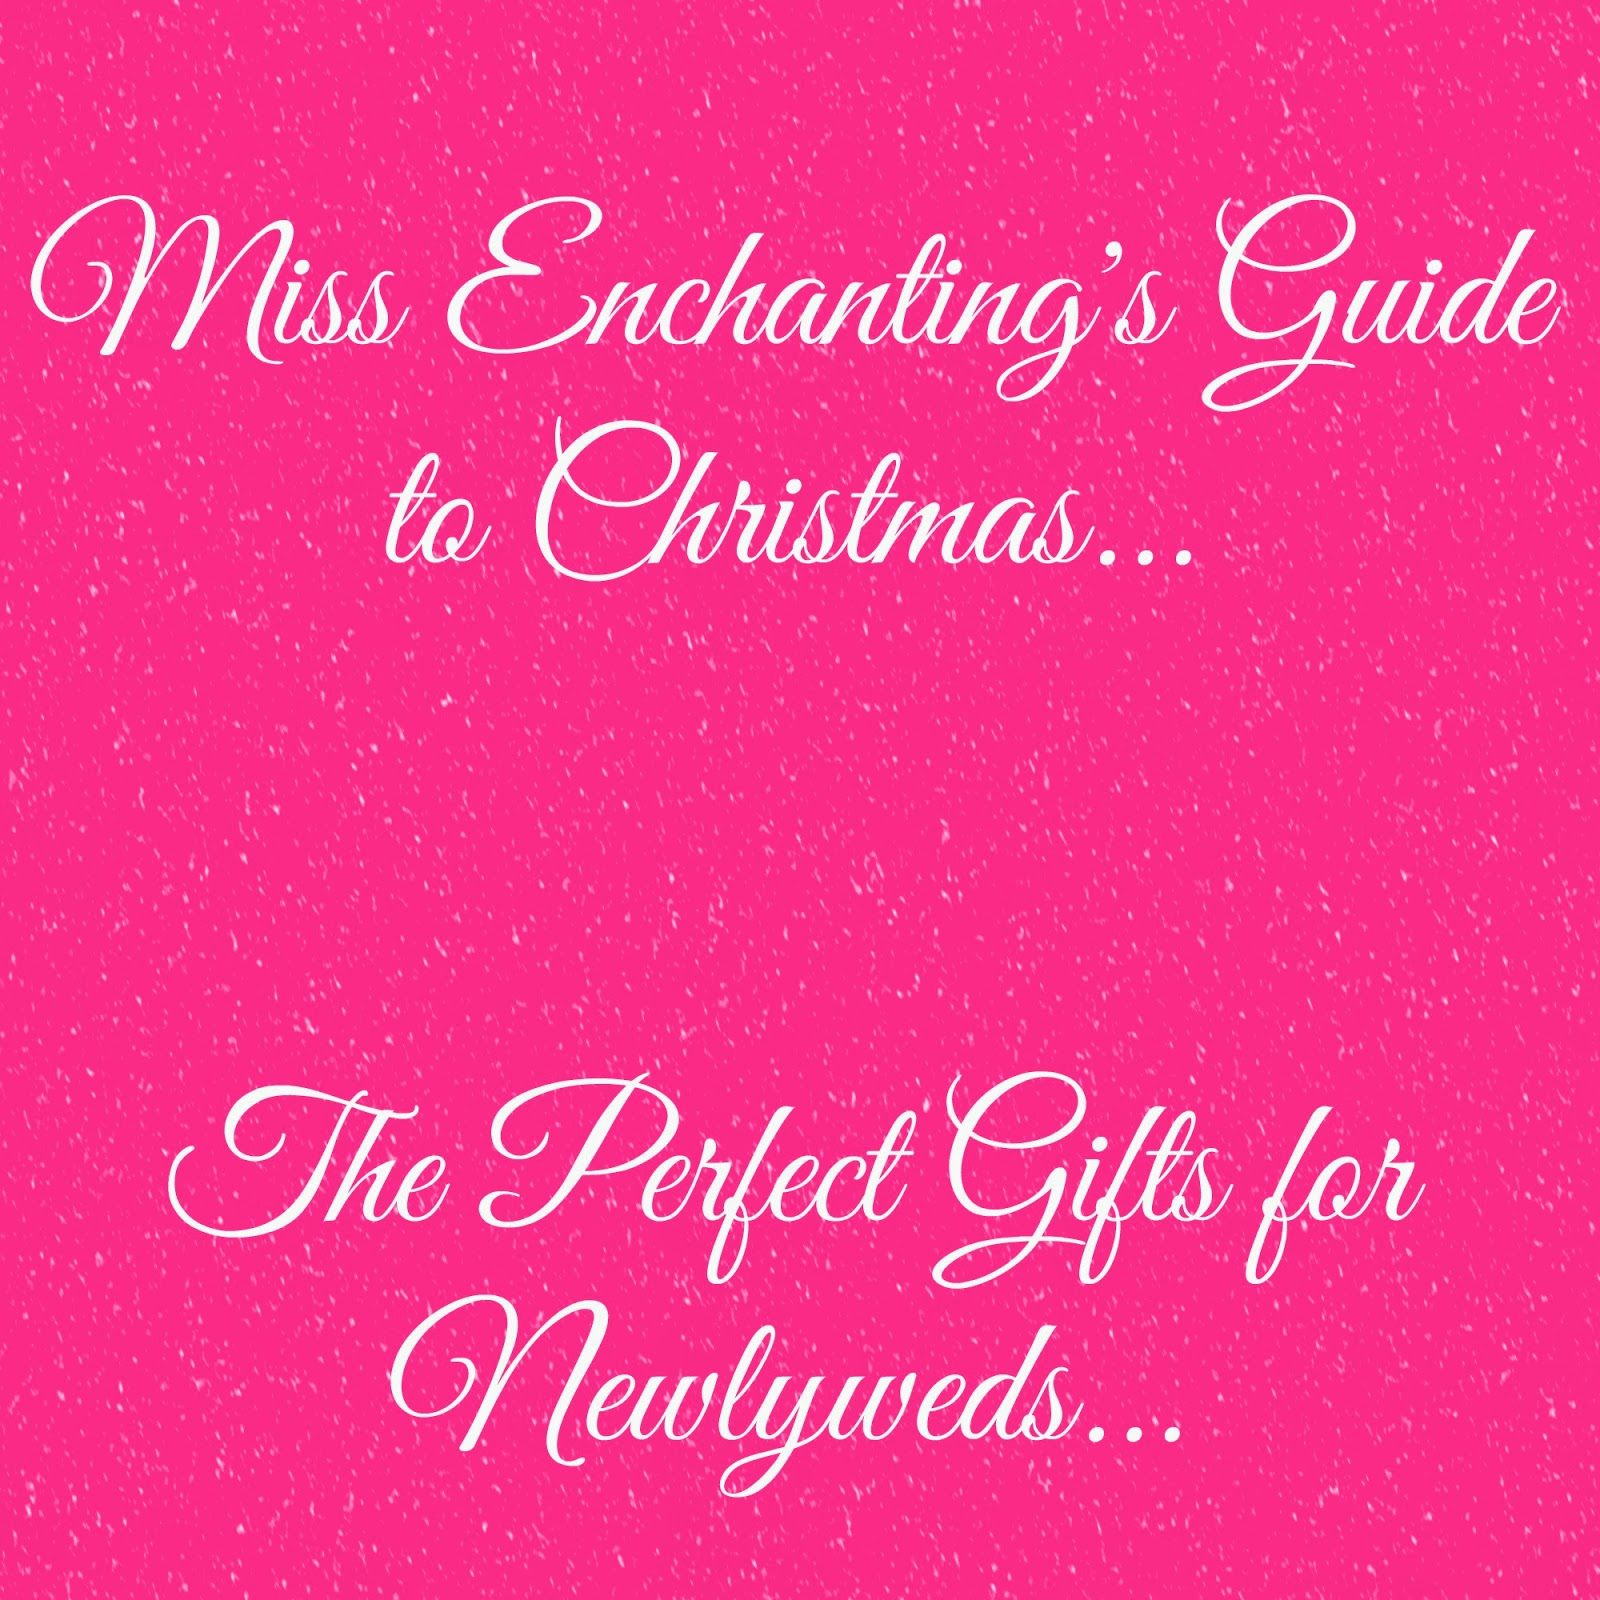 Gifts For Newly Weds: Guide To Christmas...Gifts For Newlyweds!